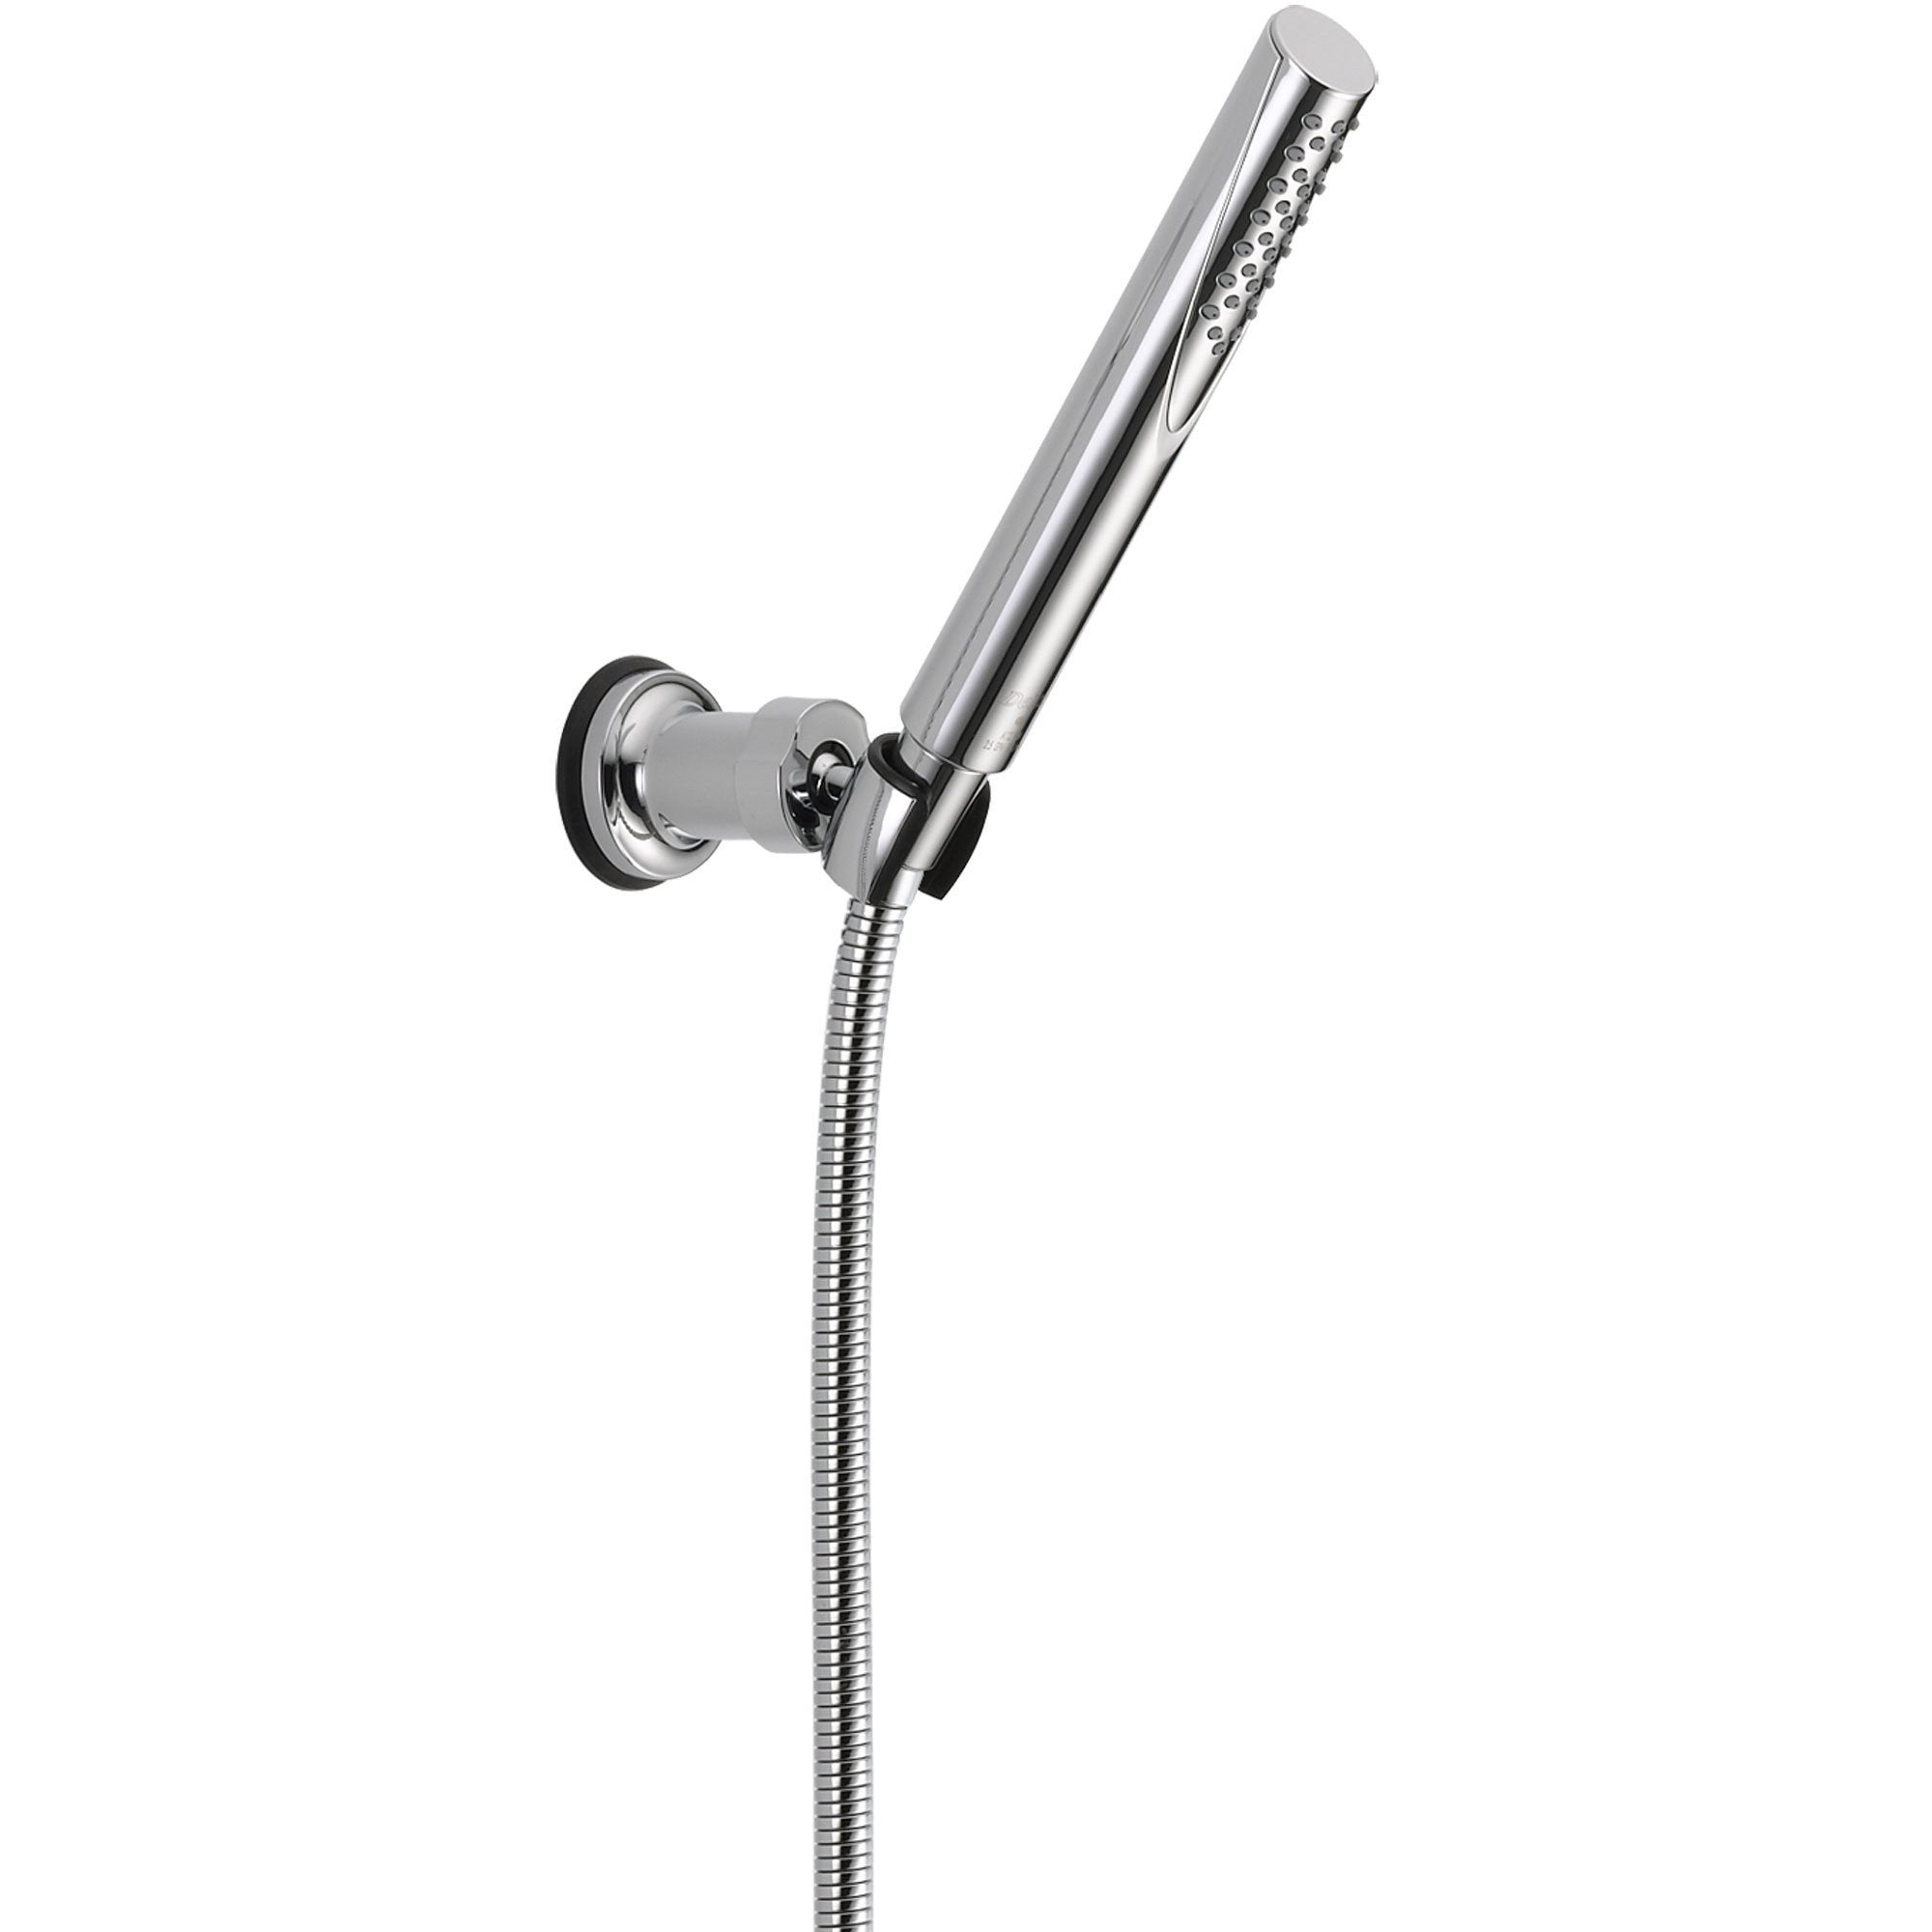 Delta Trinsic Modern Chrome Handheld Shower Head W Wall Bracket And